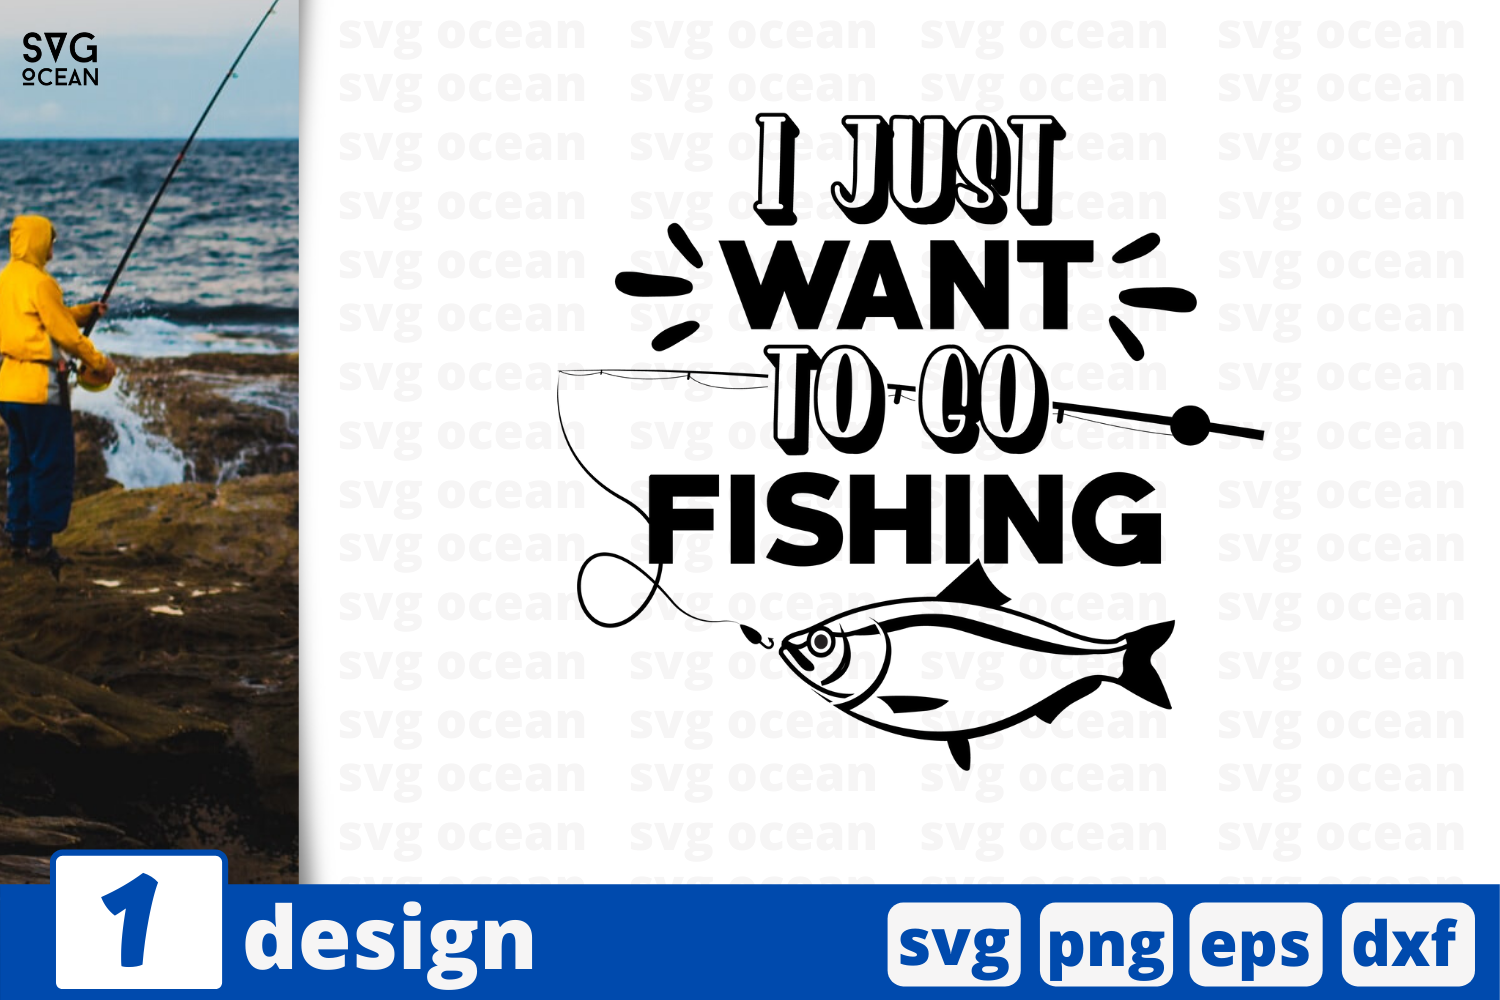 Download Free I Just Want To Go Fishing Graphic By Svgocean Creative Fabrica for Cricut Explore, Silhouette and other cutting machines.